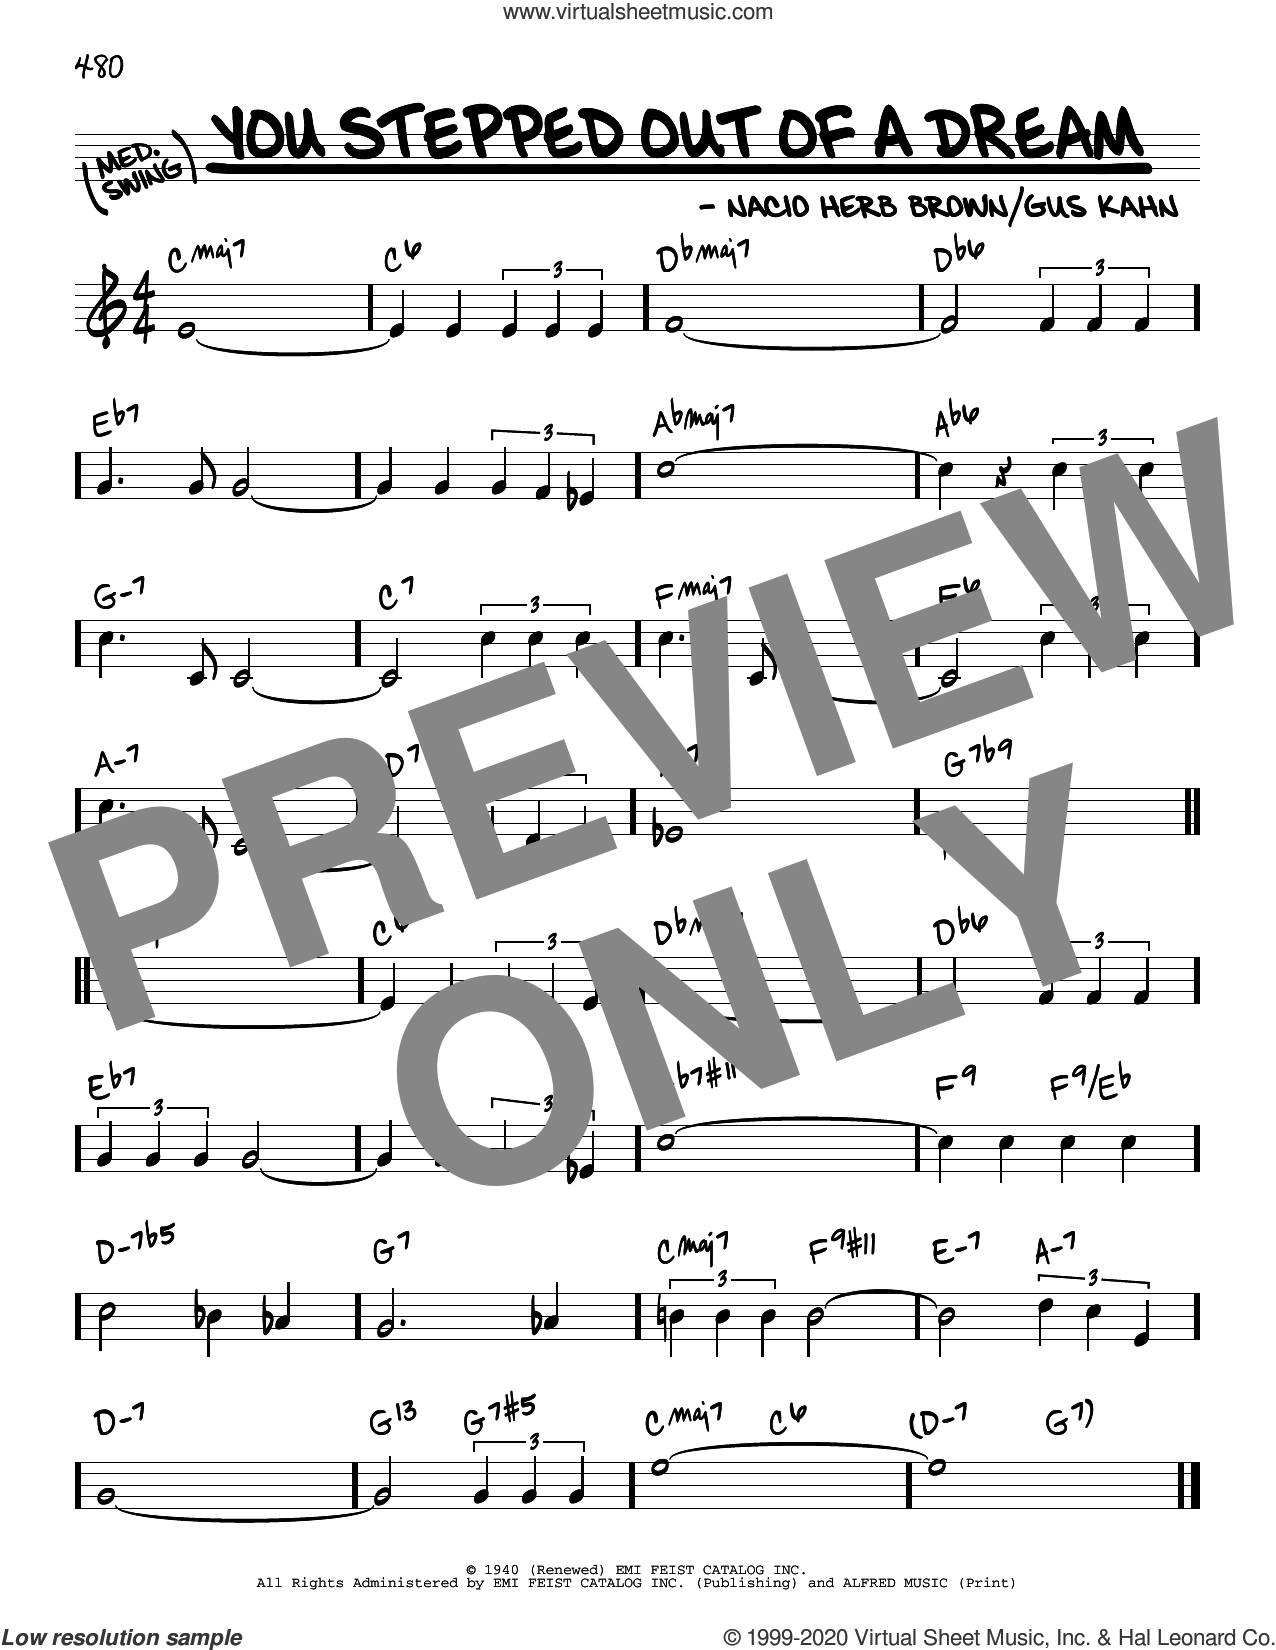 You Stepped Out Of A Dream sheet music for voice and other instruments (real book) by Gus Kahn and Nacio Herb Brown, intermediate skill level